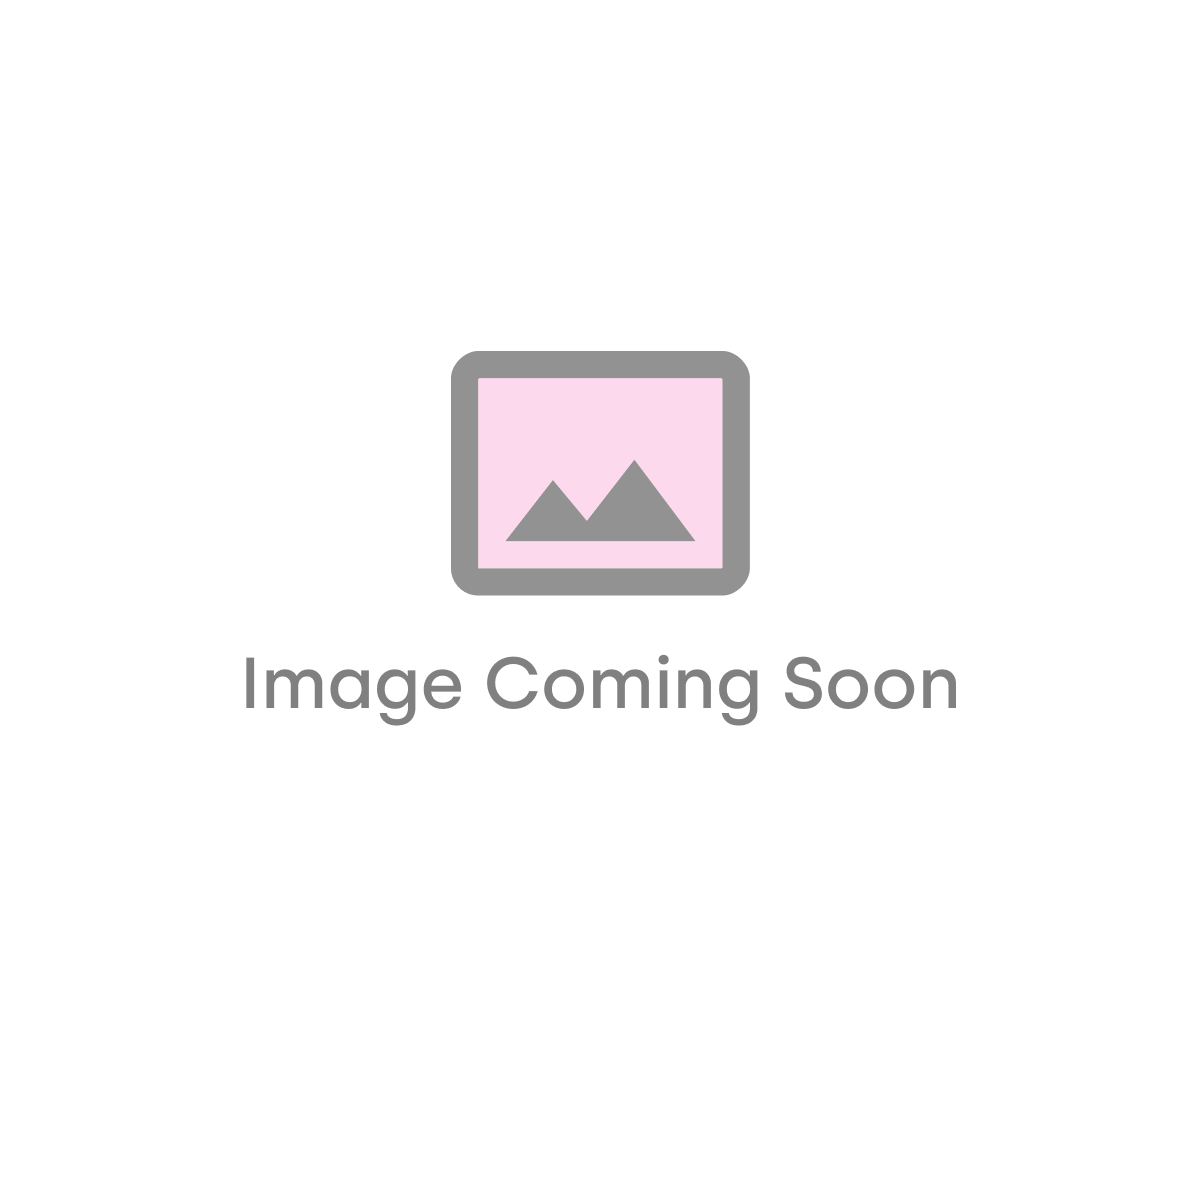 Modena Oak 8mm Laminate Wooden Flooring - 2.22sqm per pack (13961)